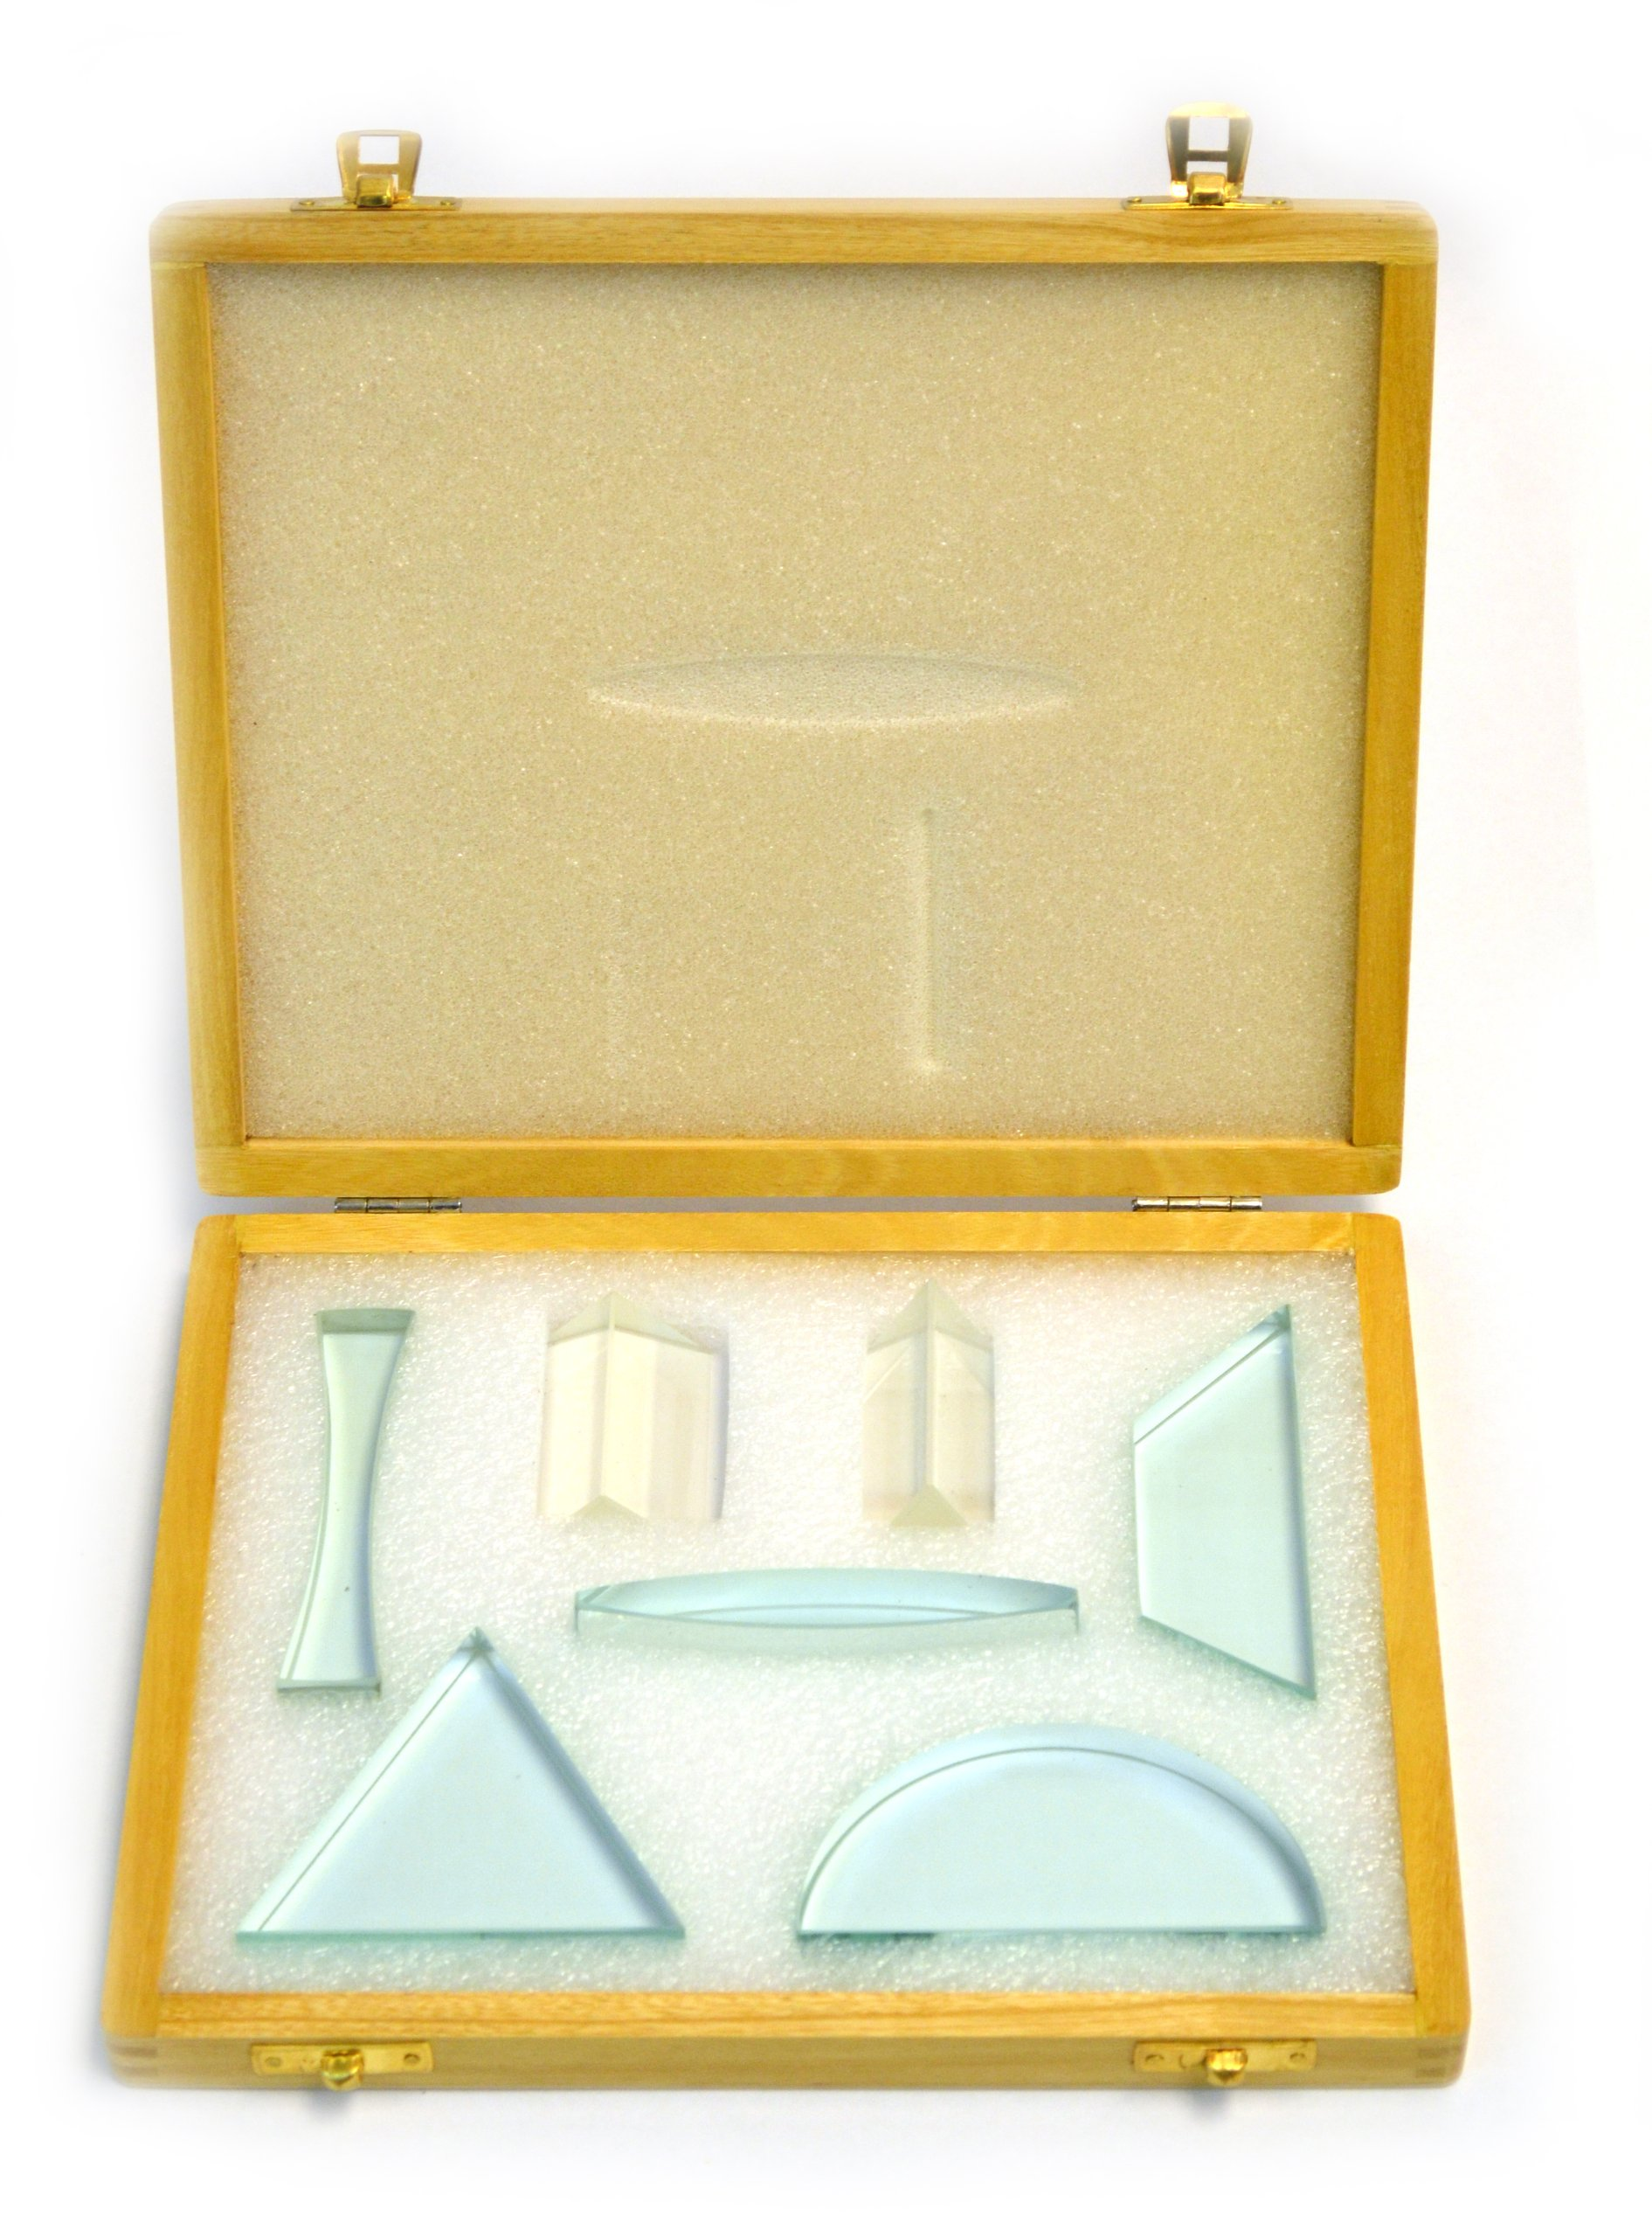 Eisco 7 Piece Glass Prism Set: 0.5'' (approximately 13mm) thickness